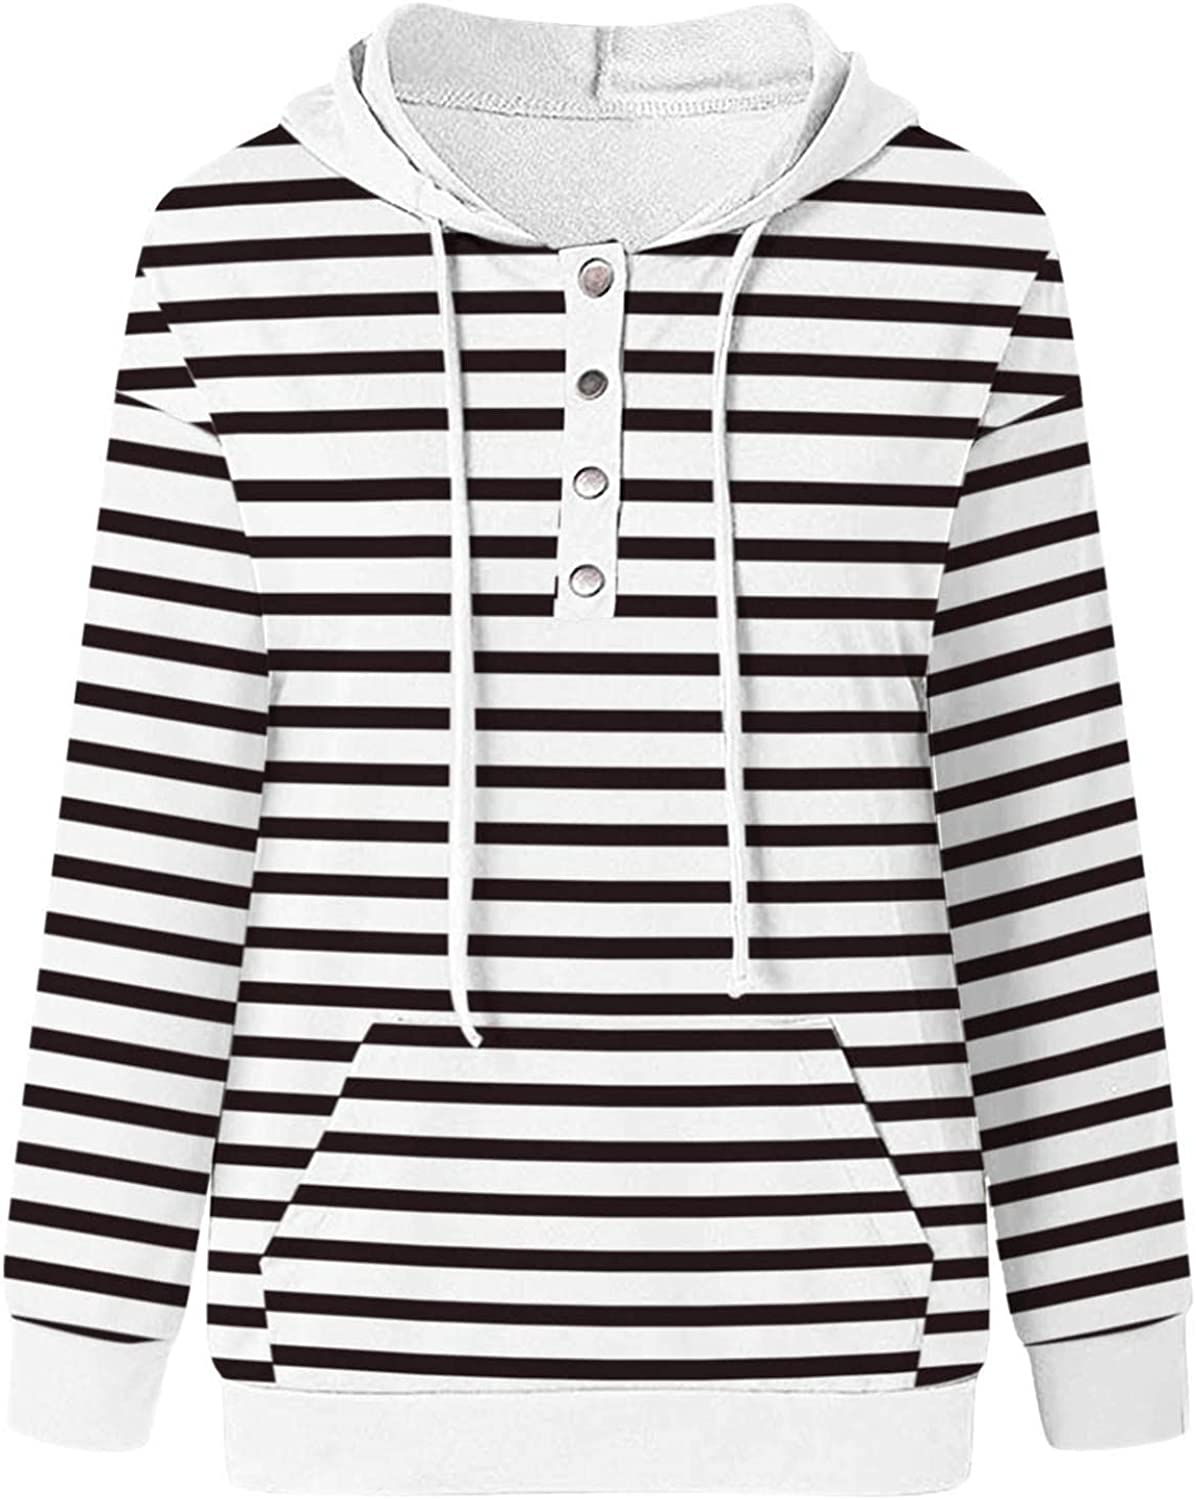 Jaqqra Hoodies for Women Button Down Pullover Long Sleeve Casual Drawstring Sweatshirts Comfy Hoodie Tops with Pocket